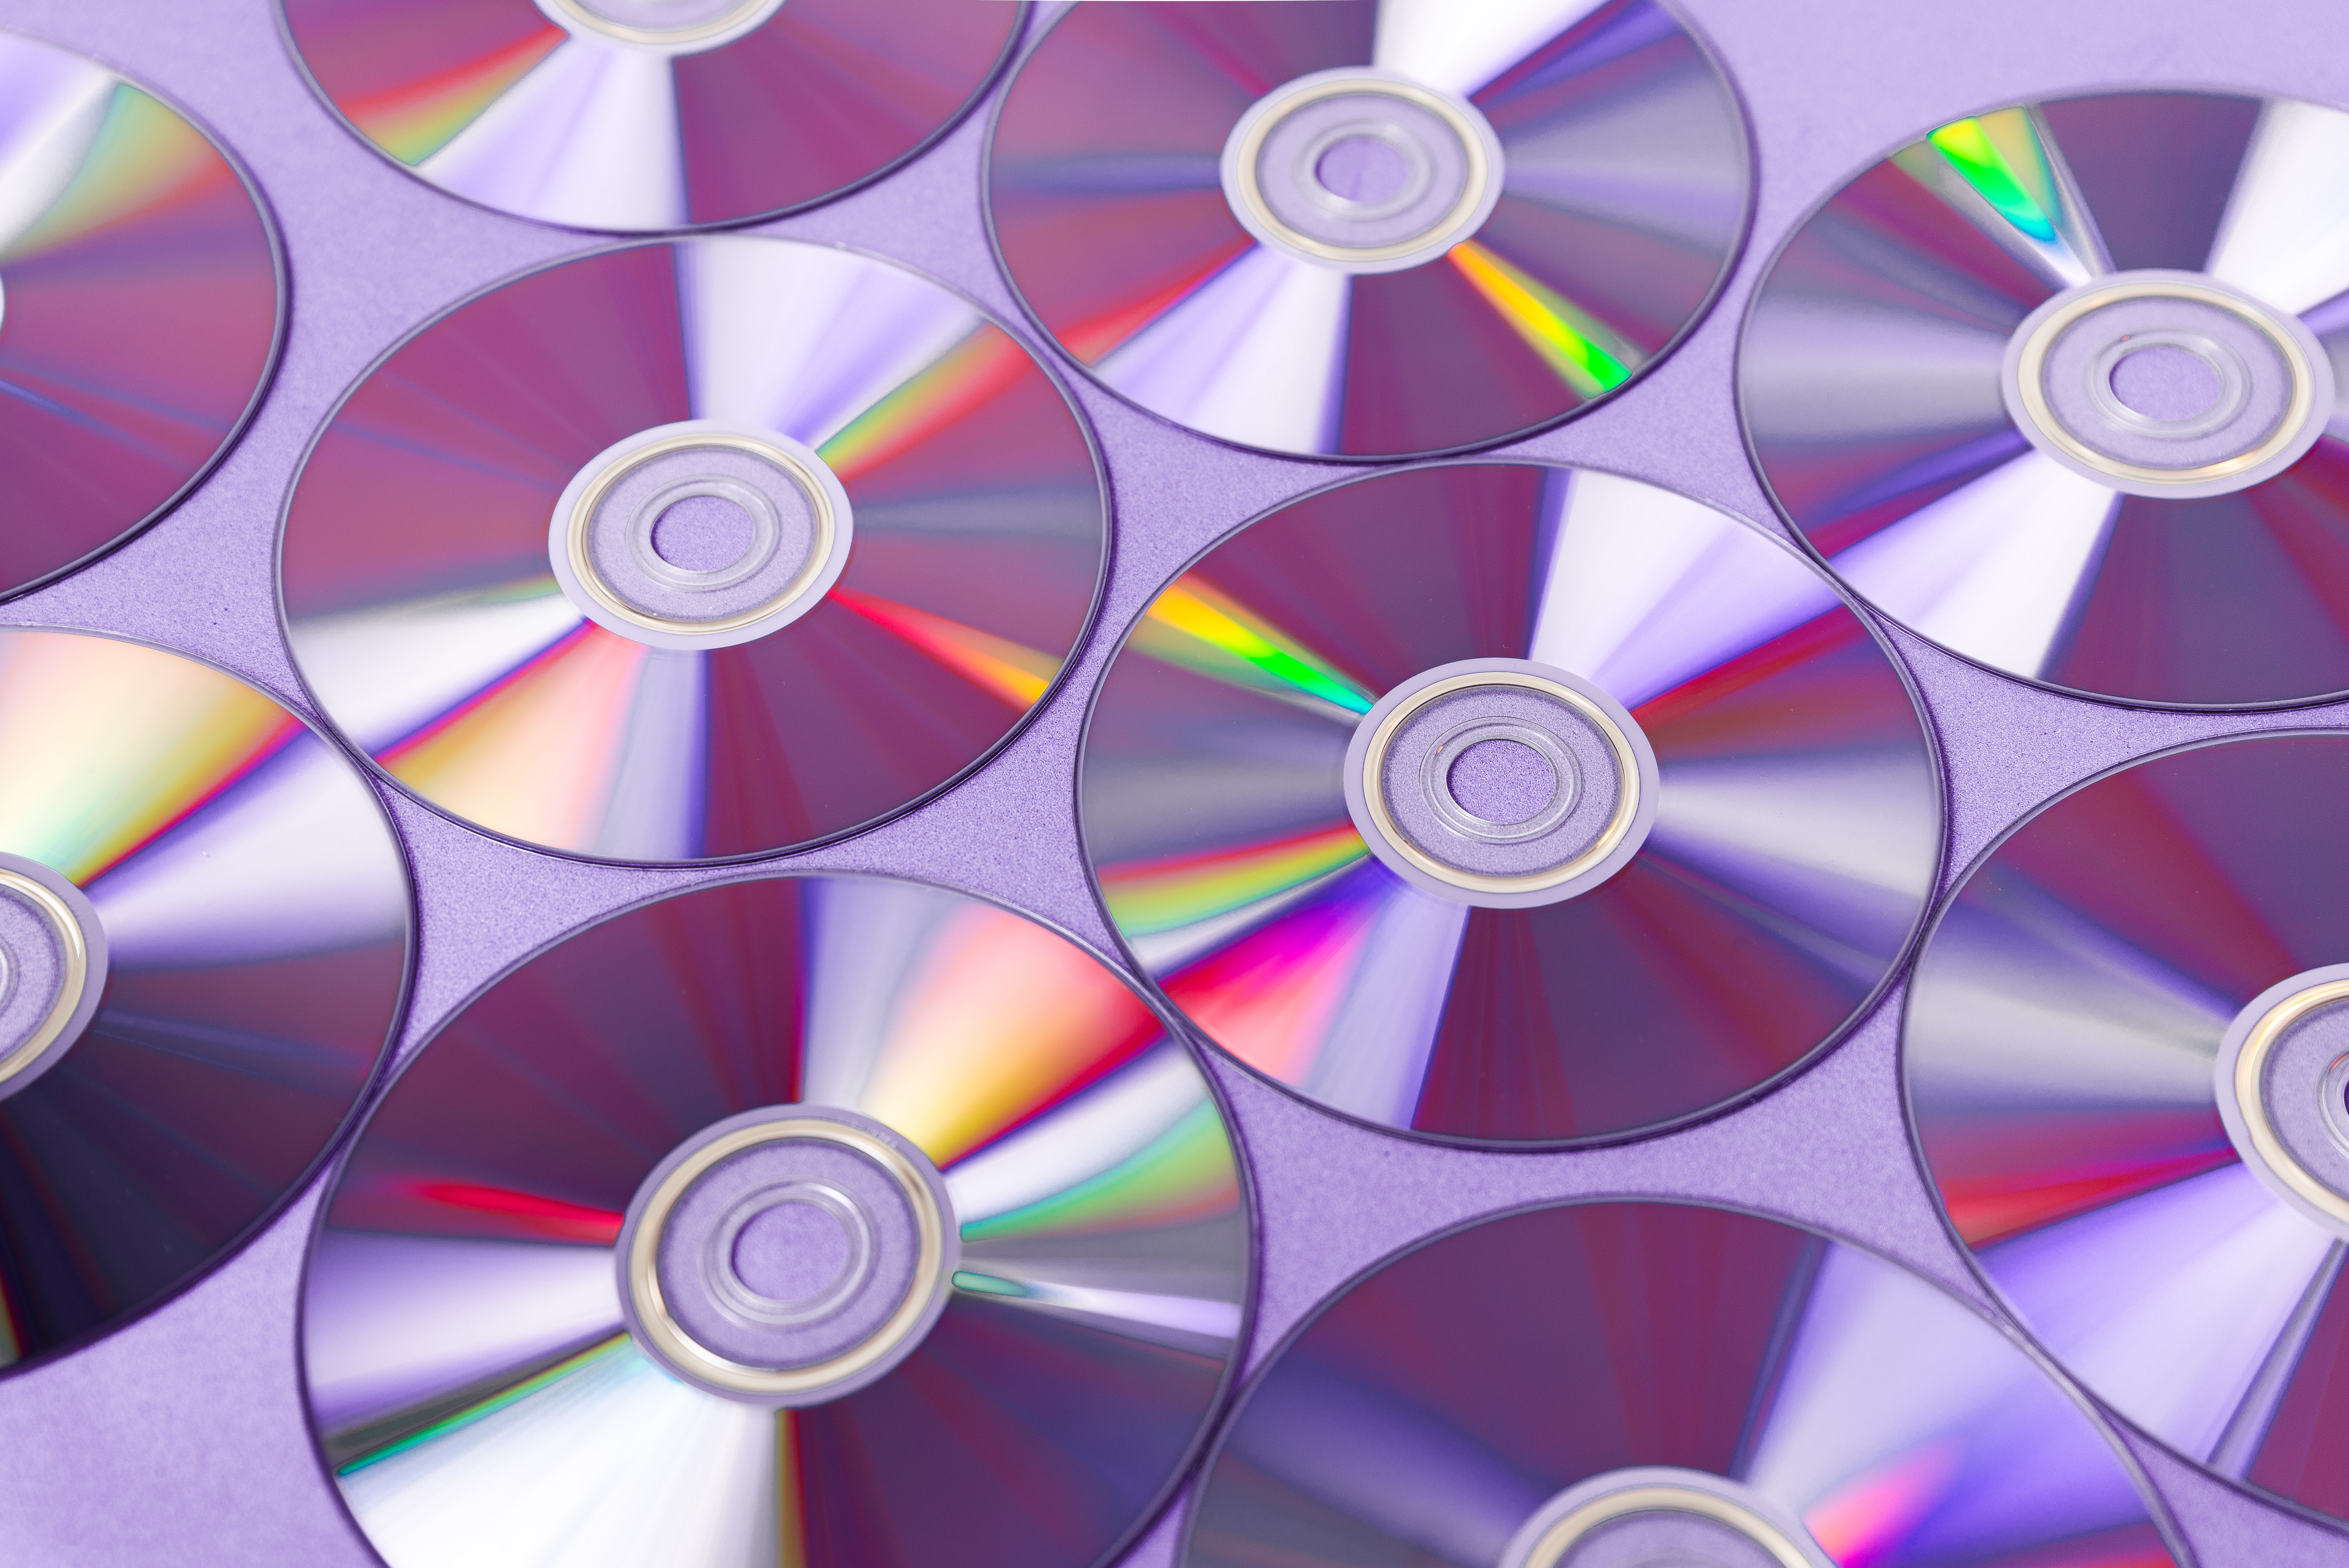 DVDs on a surface